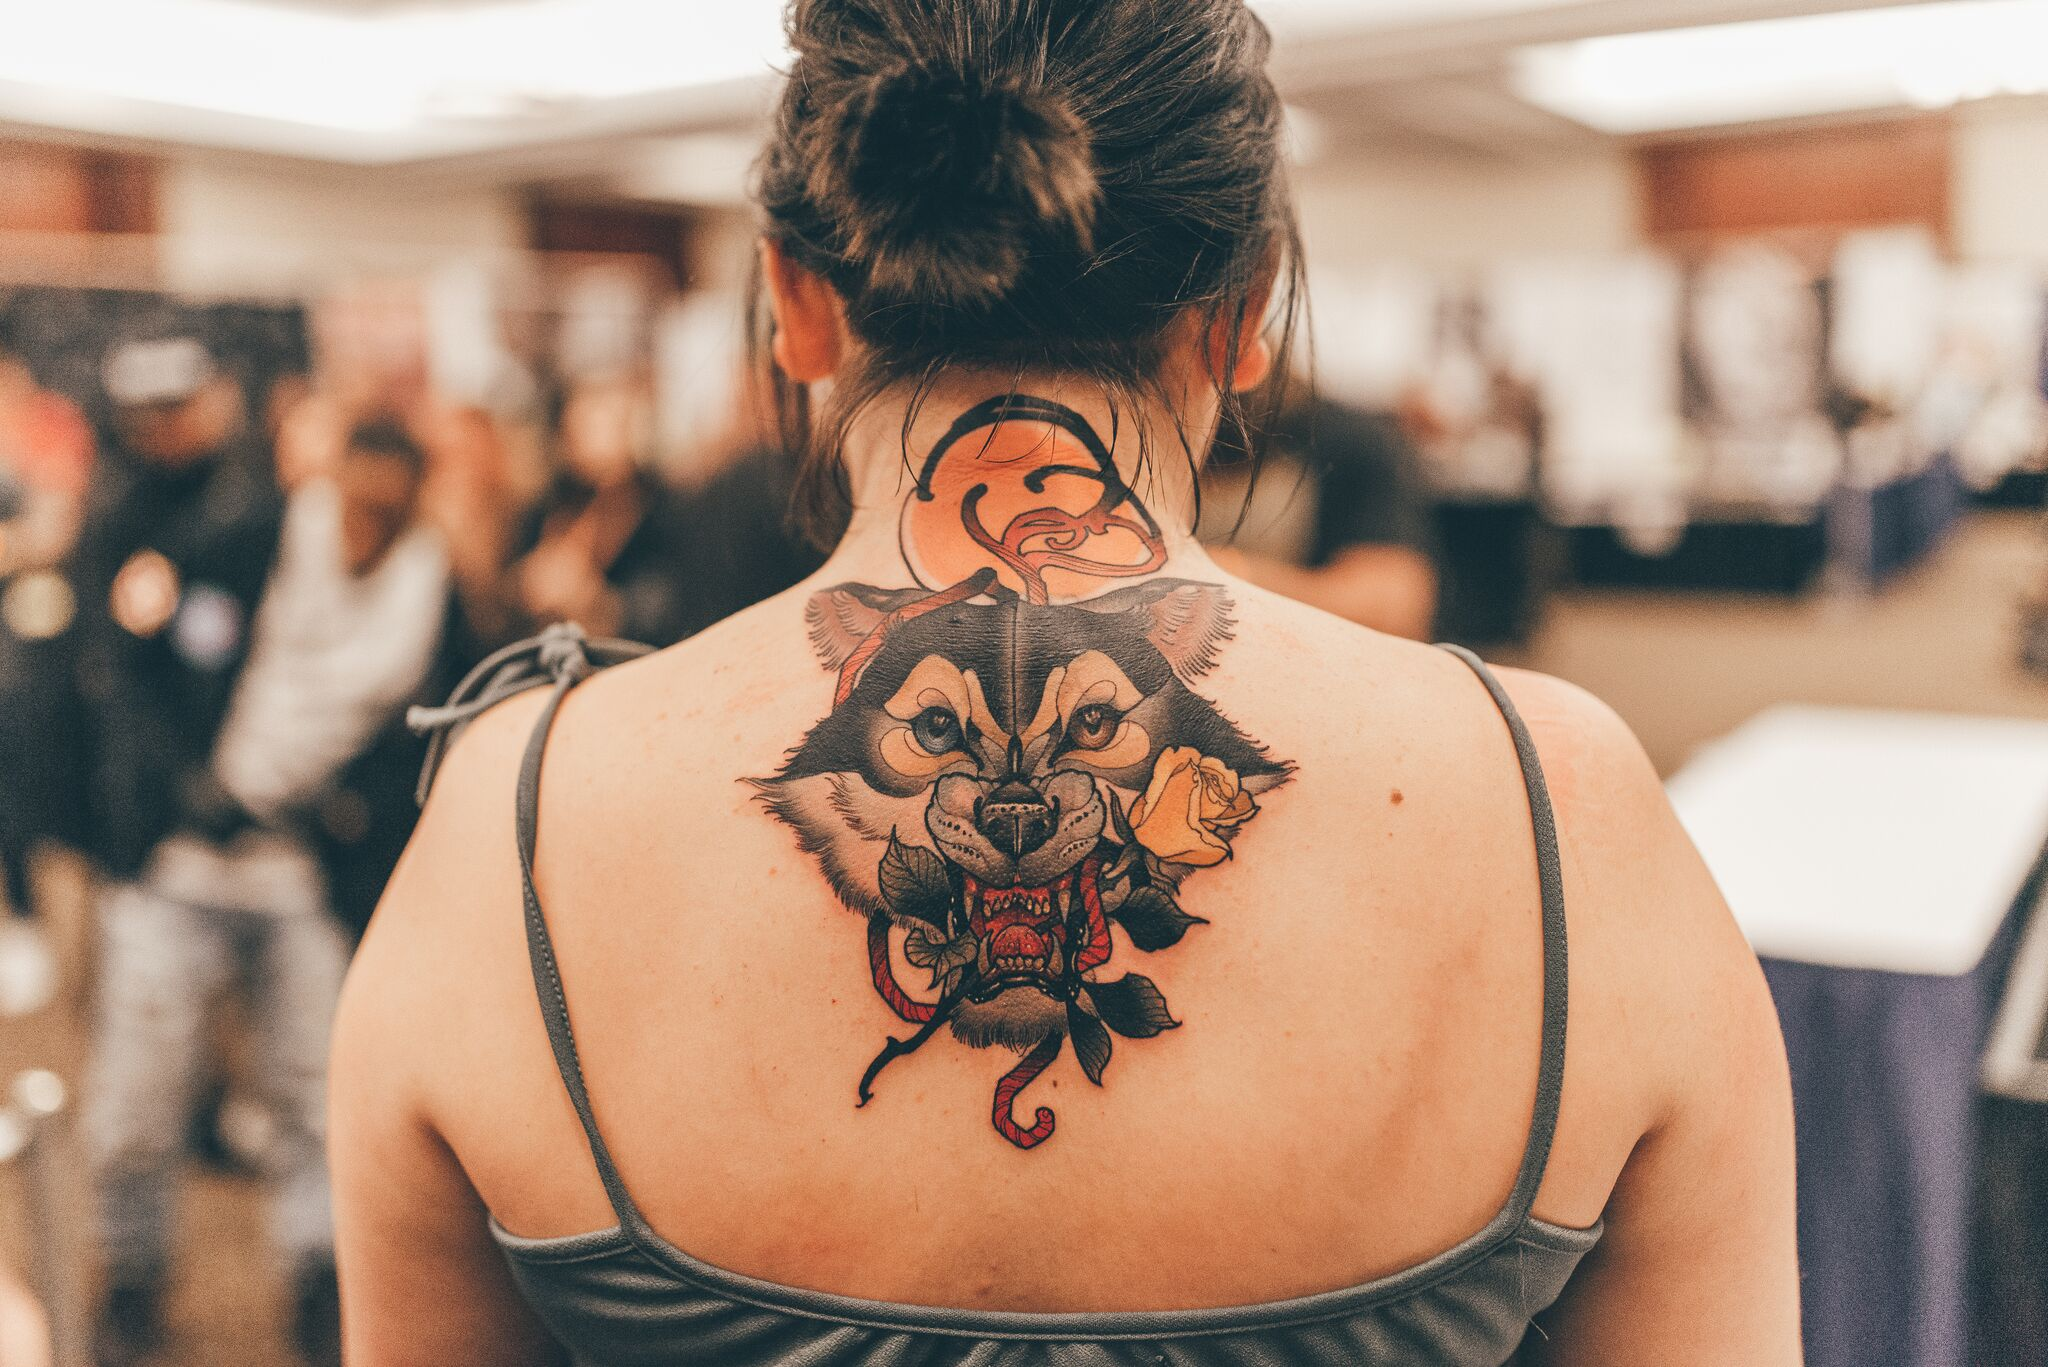 f974ad48115d5 2019 Space City Expo – Art-I-Facts Tattoo